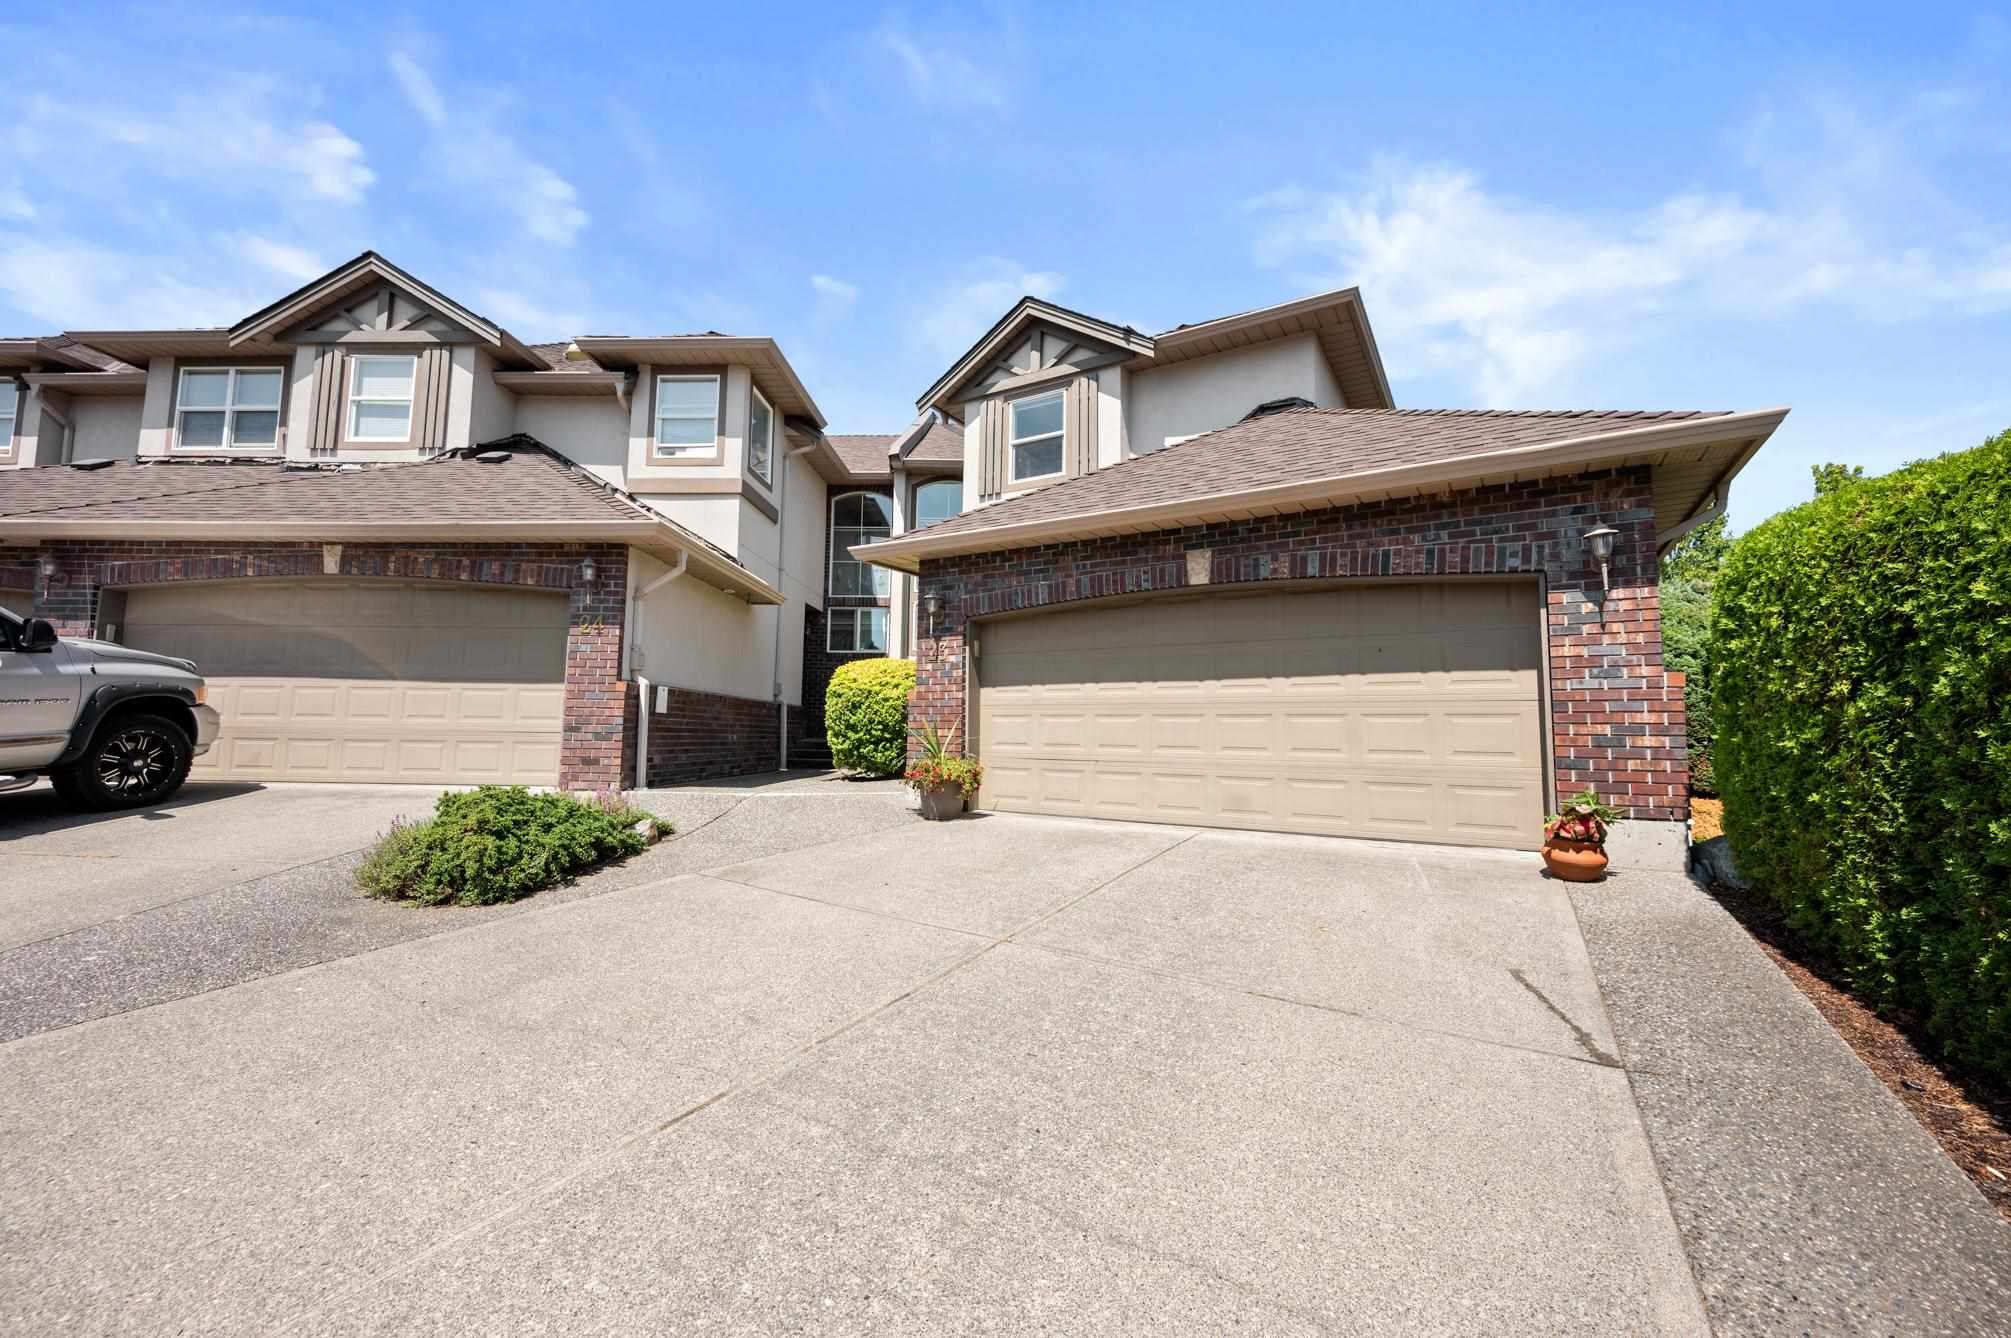 23 2525 YALE COURT - Abbotsford East Townhouse for sale, 4 Bedrooms (R2602320) - #1